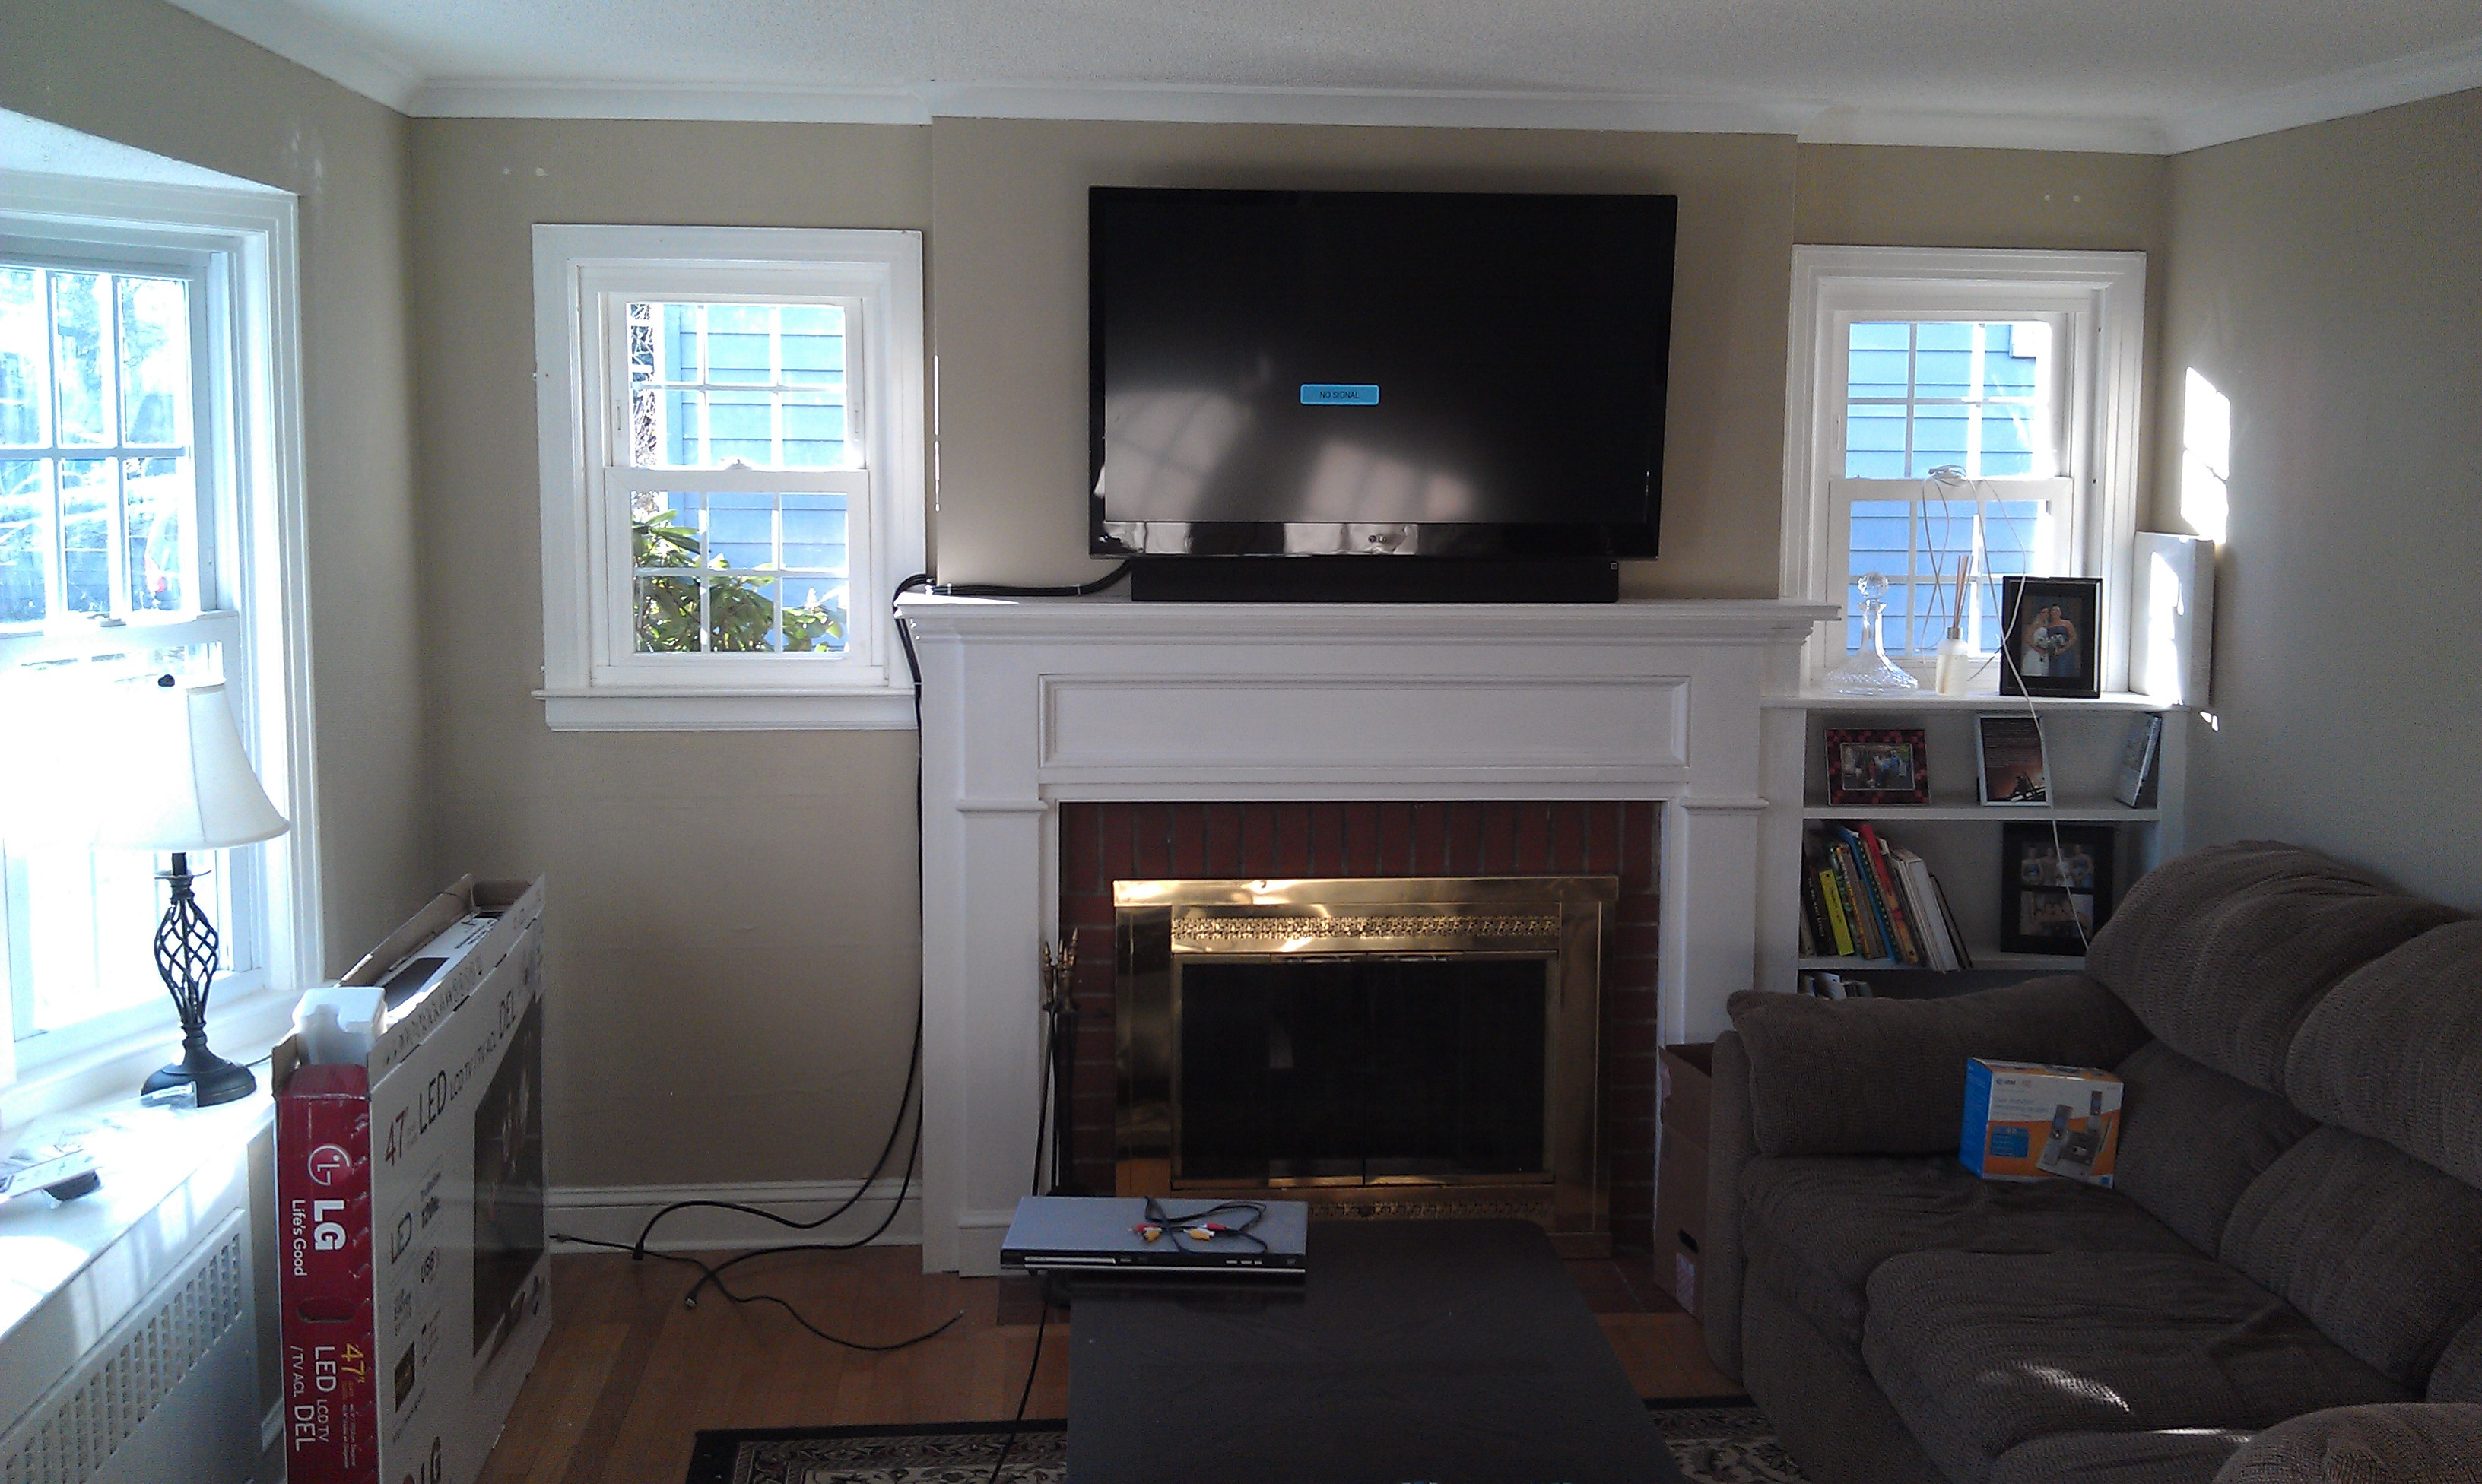 Best ideas about Mounting Tv Above Fireplace . Save or Pin Wethersfield CT mount tv above fireplace Now.